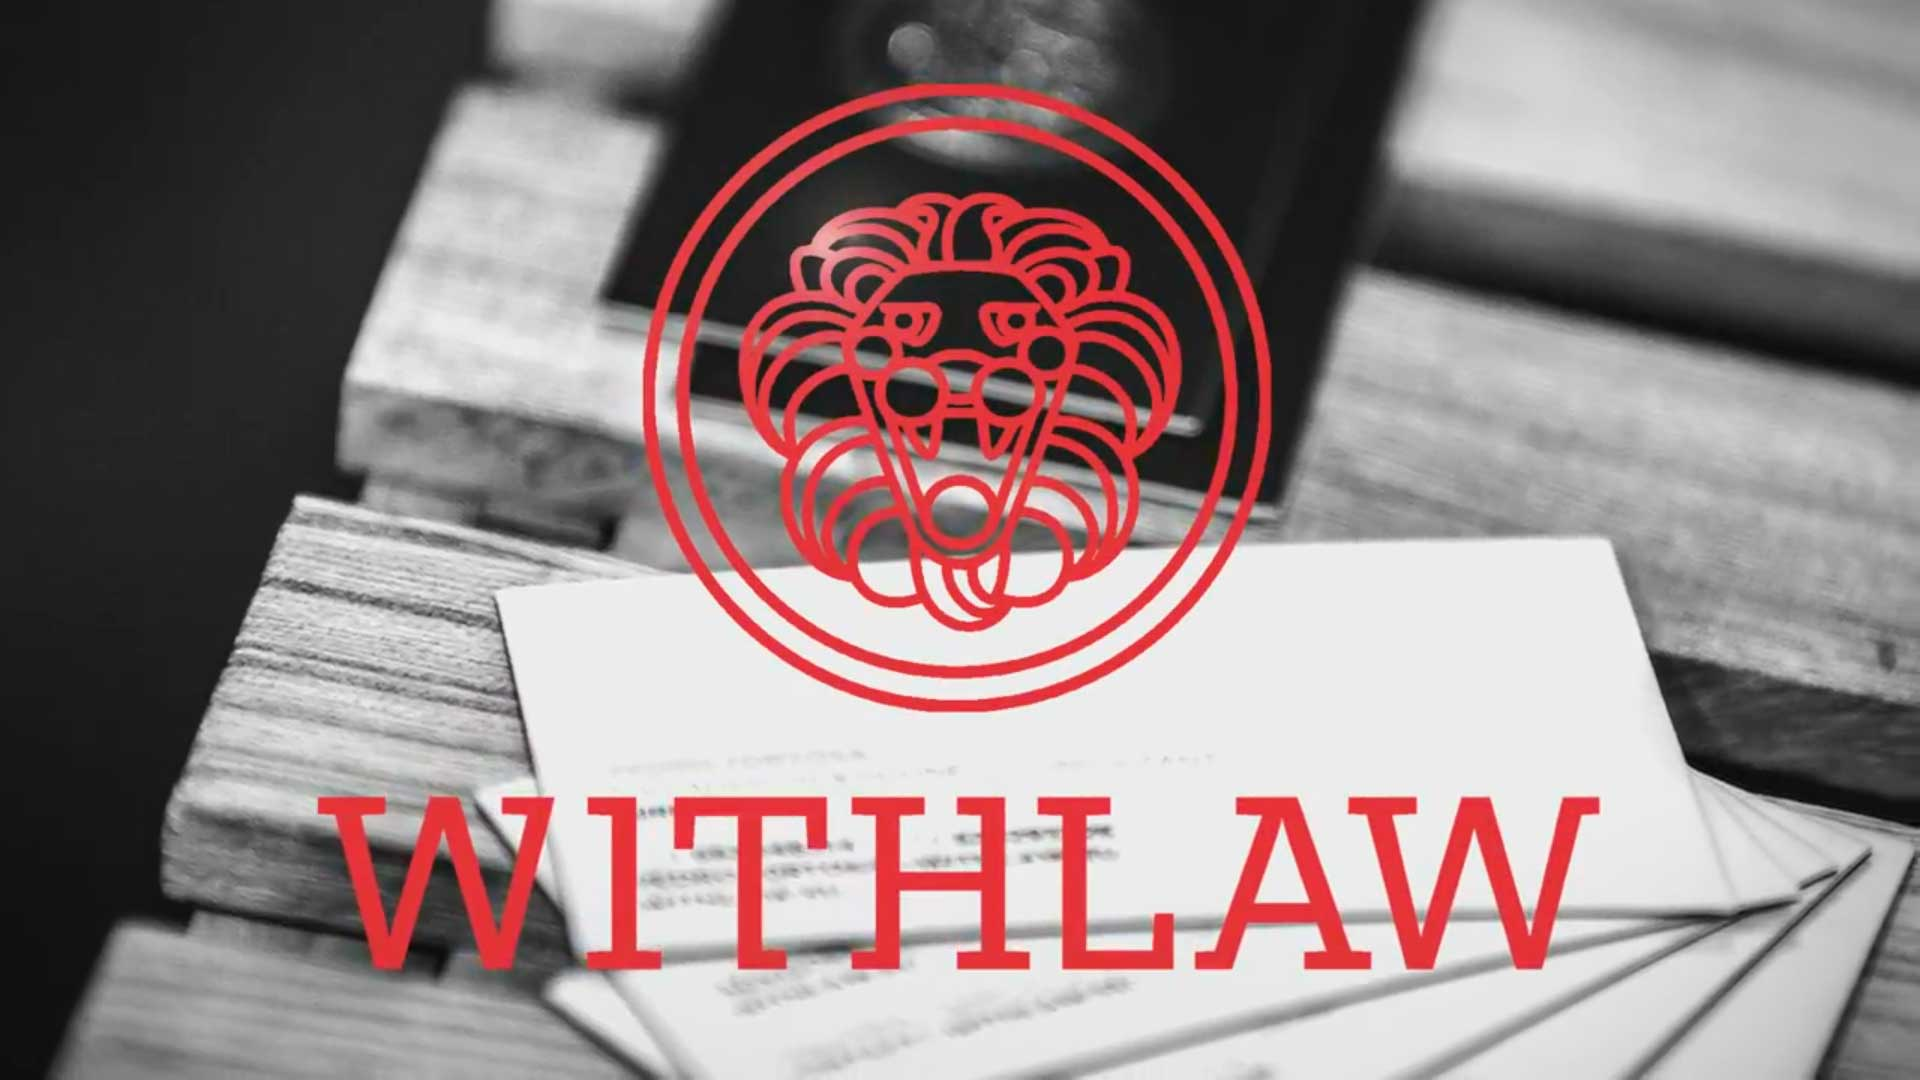 withlaw